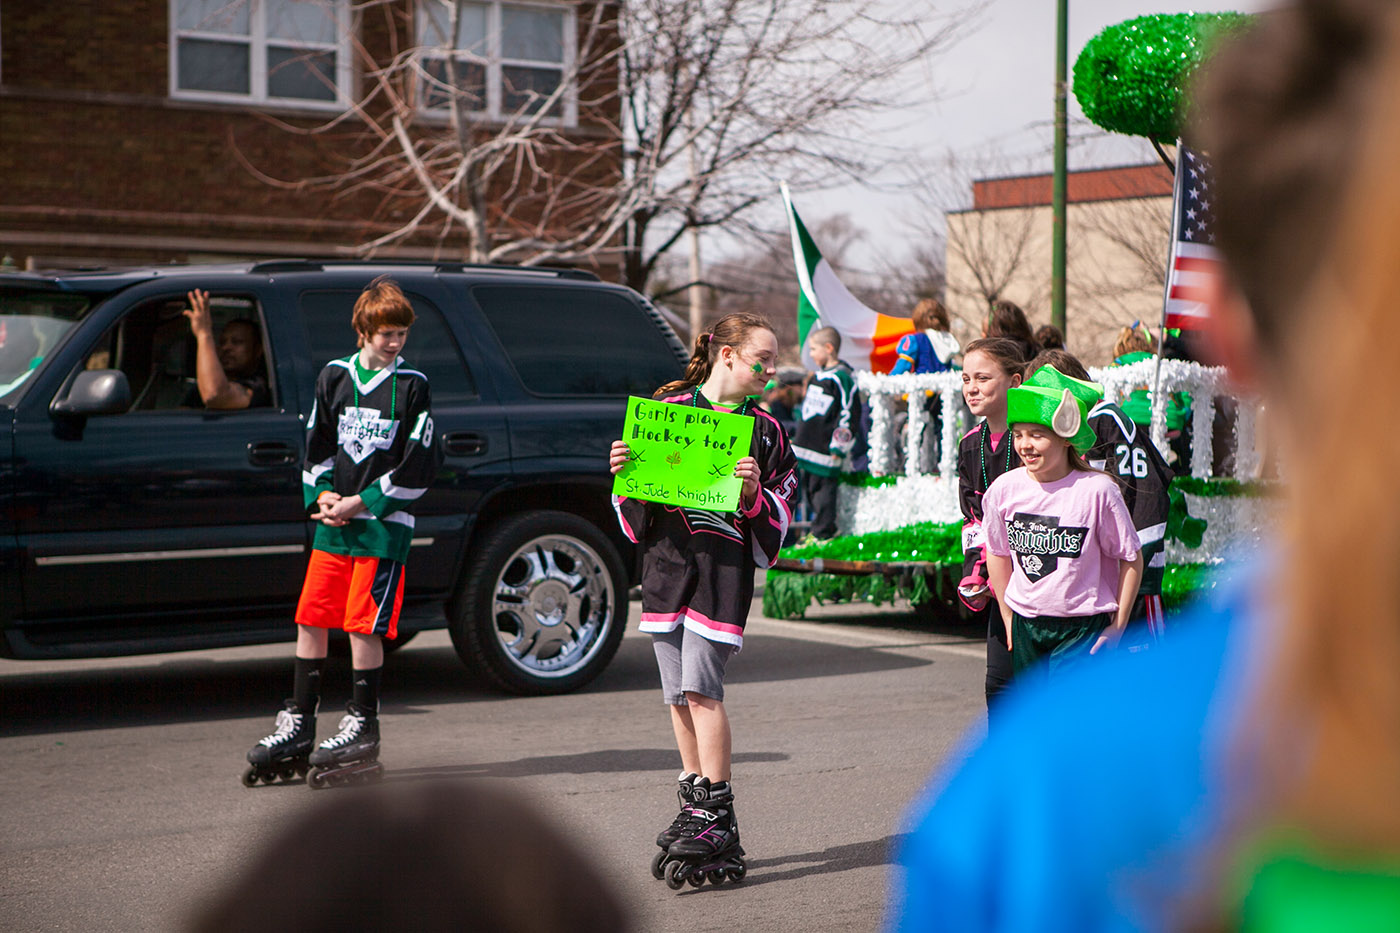 Girls Play Hockey Too - Chicago South Side Irish Parade 2015 - St. Patrick's Day